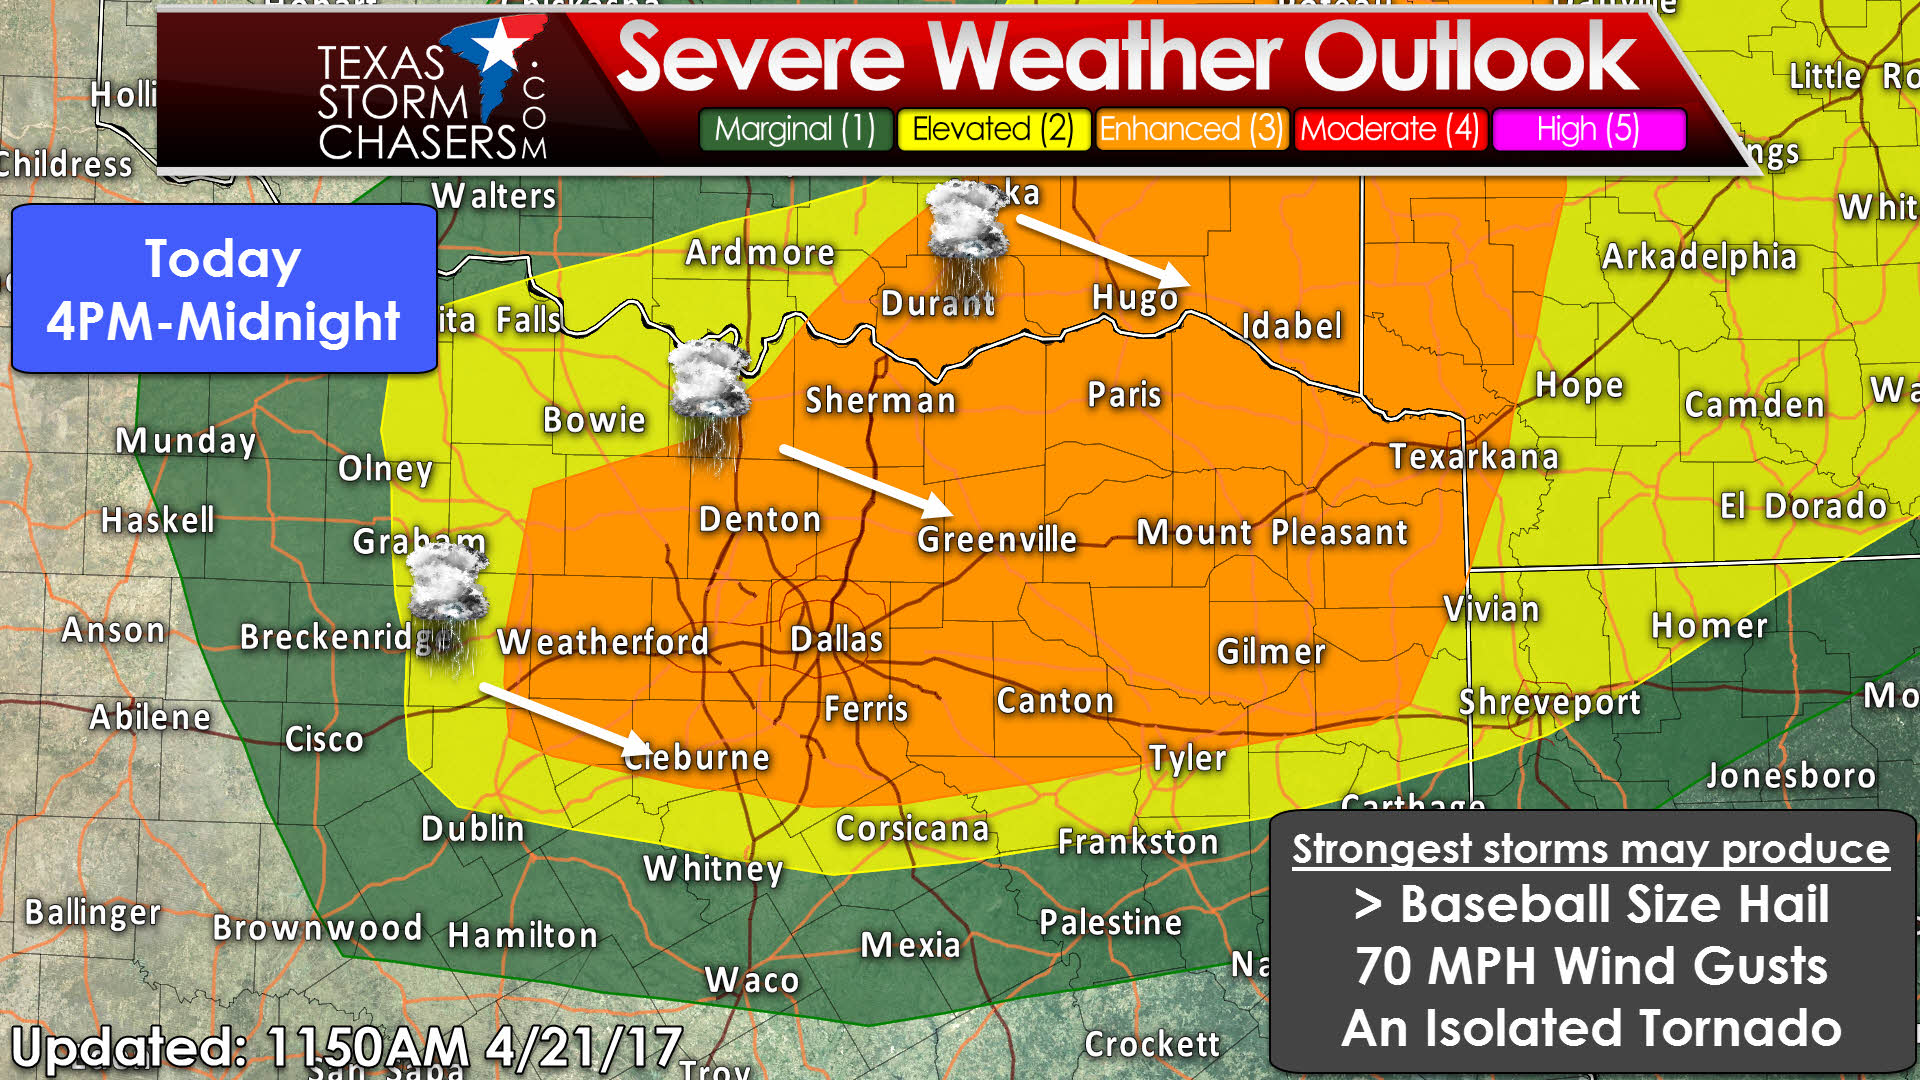 level enhanced severe weather risk expanded texas storm we now have an enhanced risk of severe weather across much of north and northeast texas this includes all of the d fw metroplex east to tyler northeast to